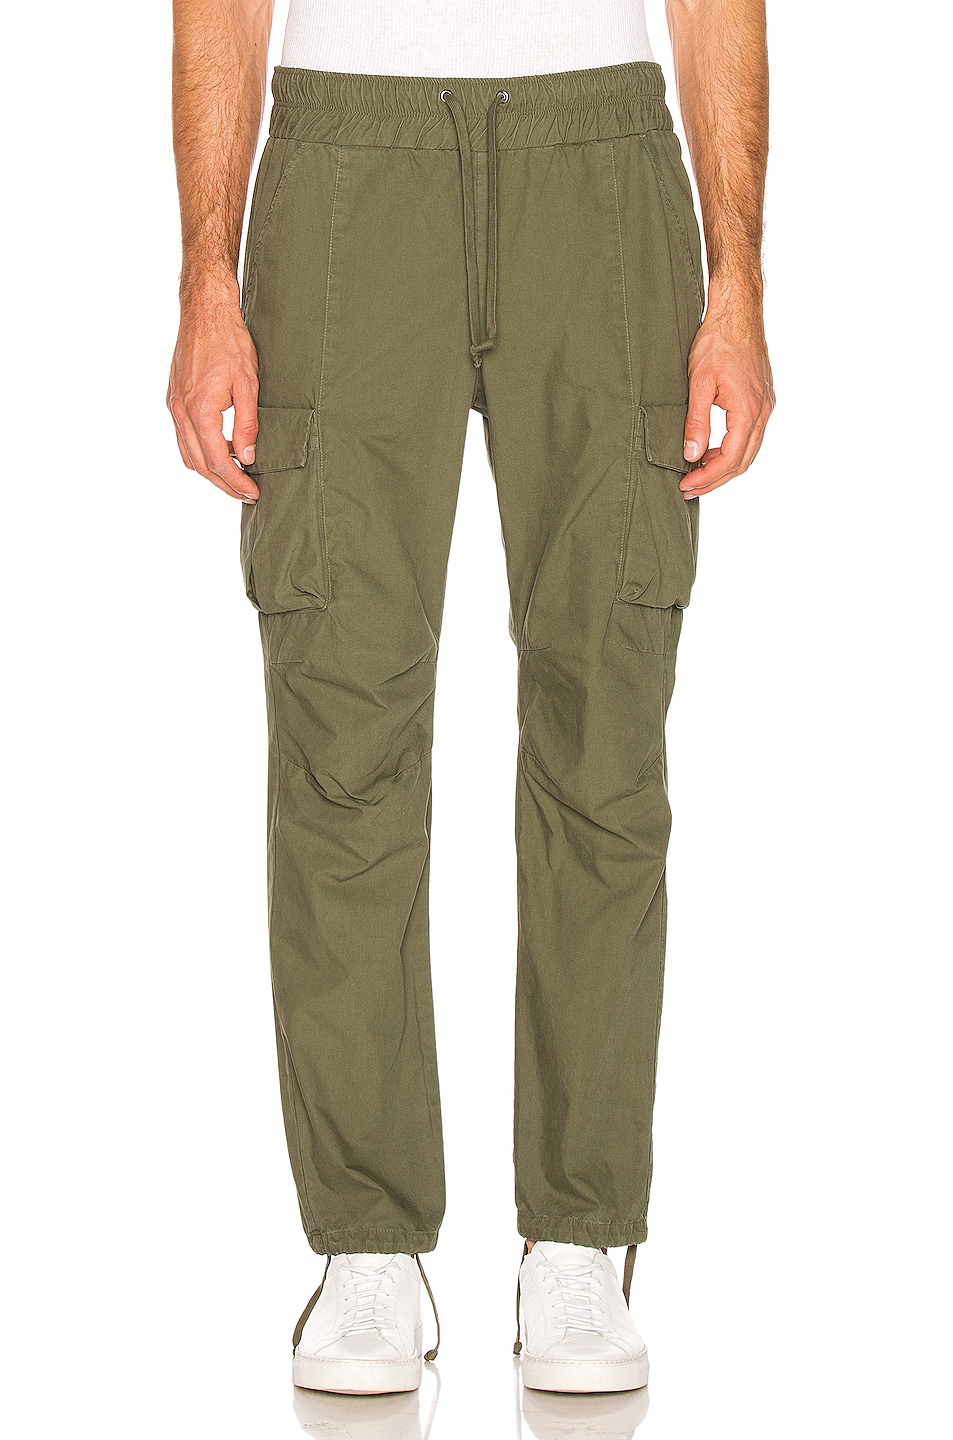 John Elliott Pants Military Cargo Pants